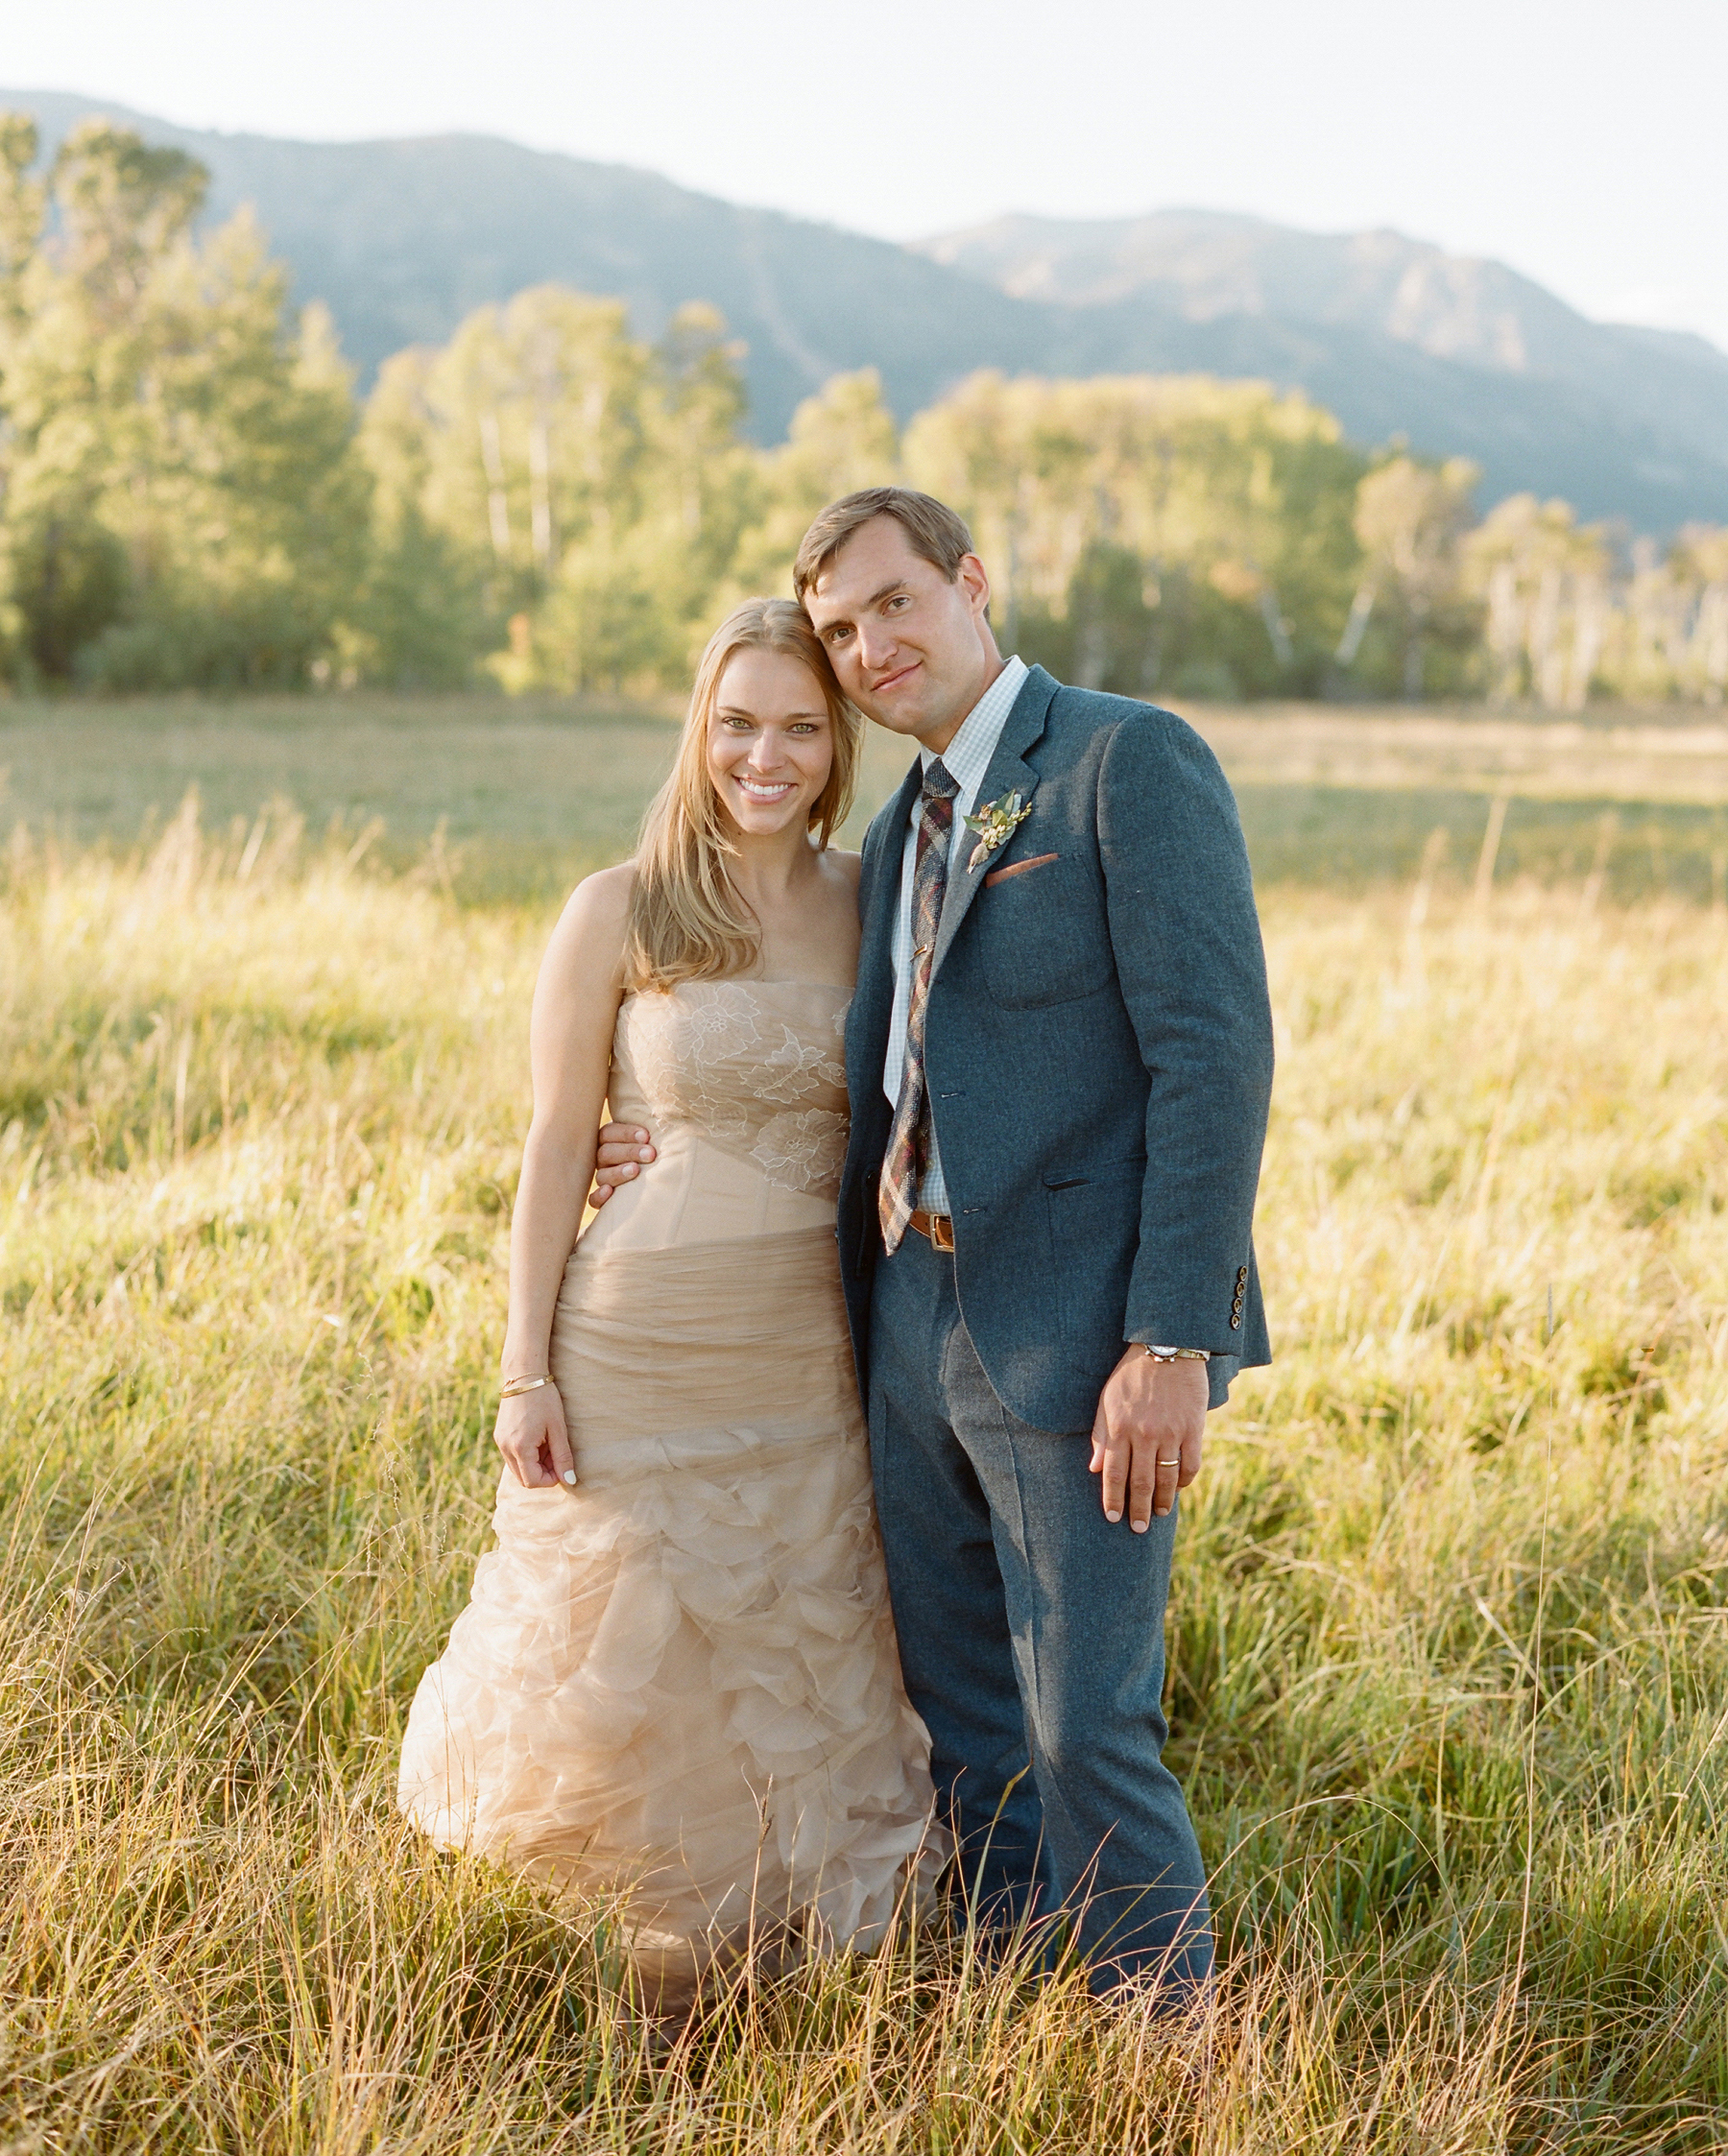 callie-eric-wedding-couple-594-s112113-0815.jpg